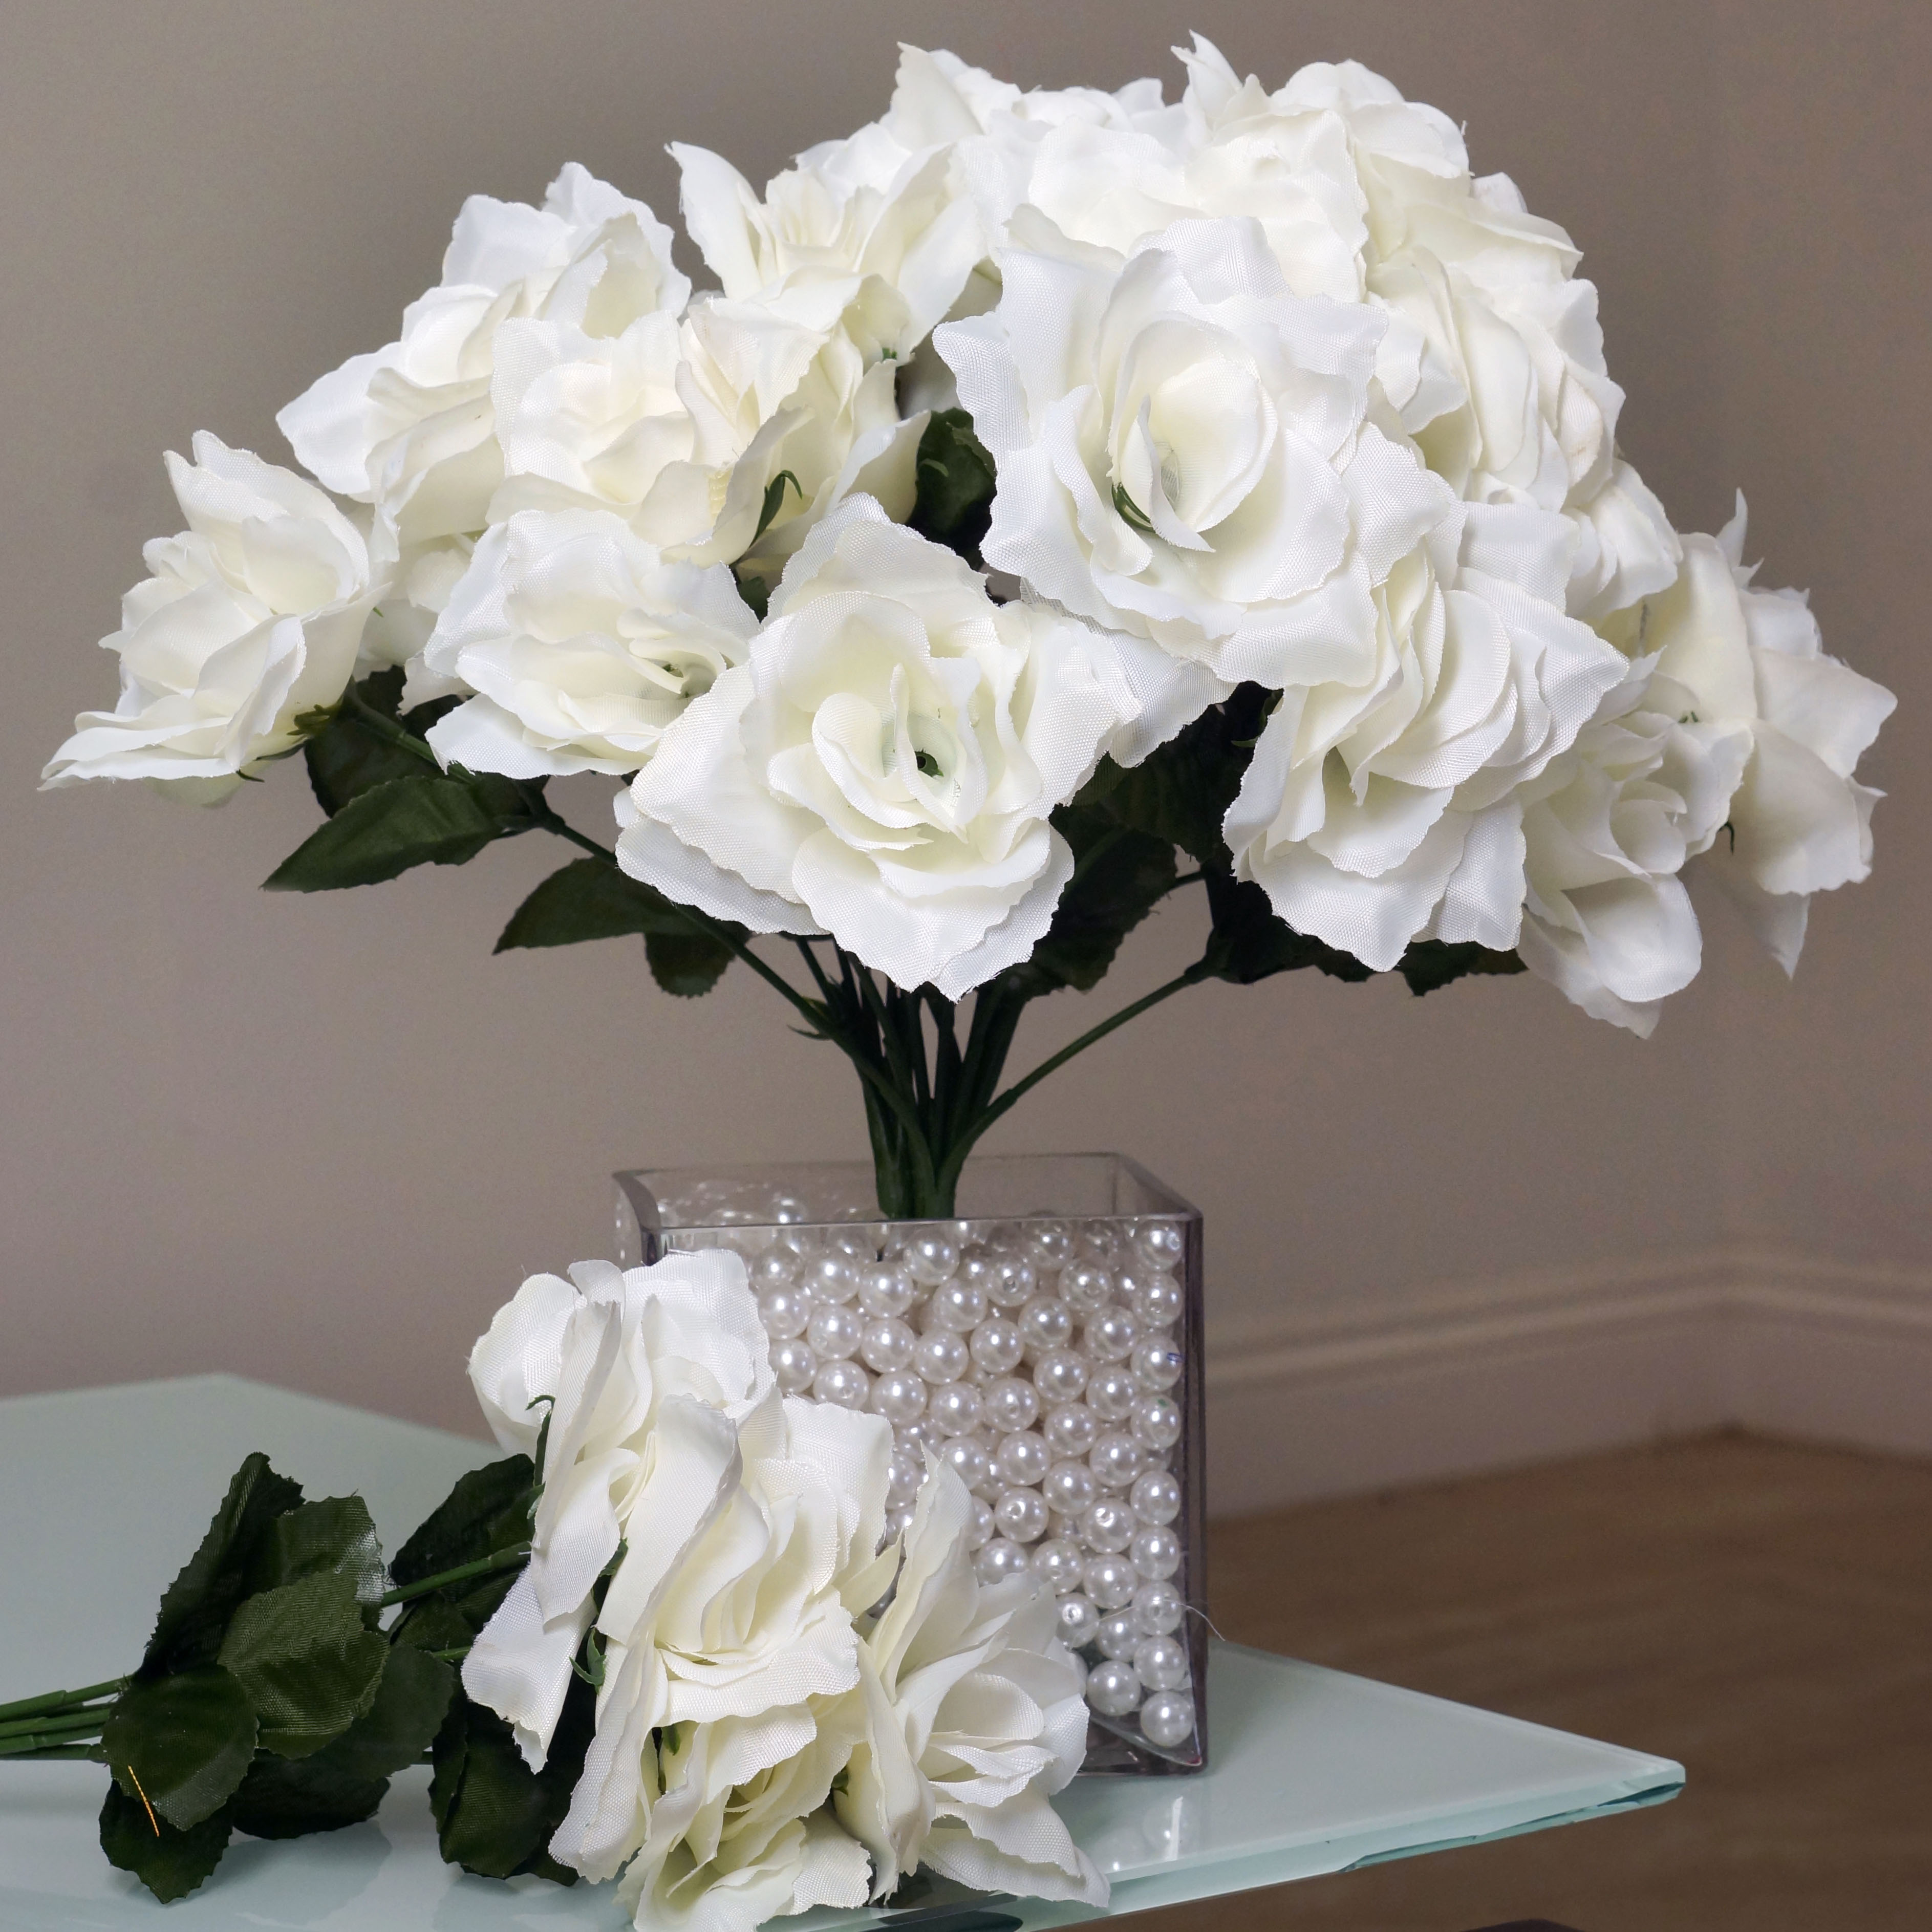 252 SILK OPEN ROSES Wedding WHOLESALE Discounted Flowers Bouquets Centerpiece